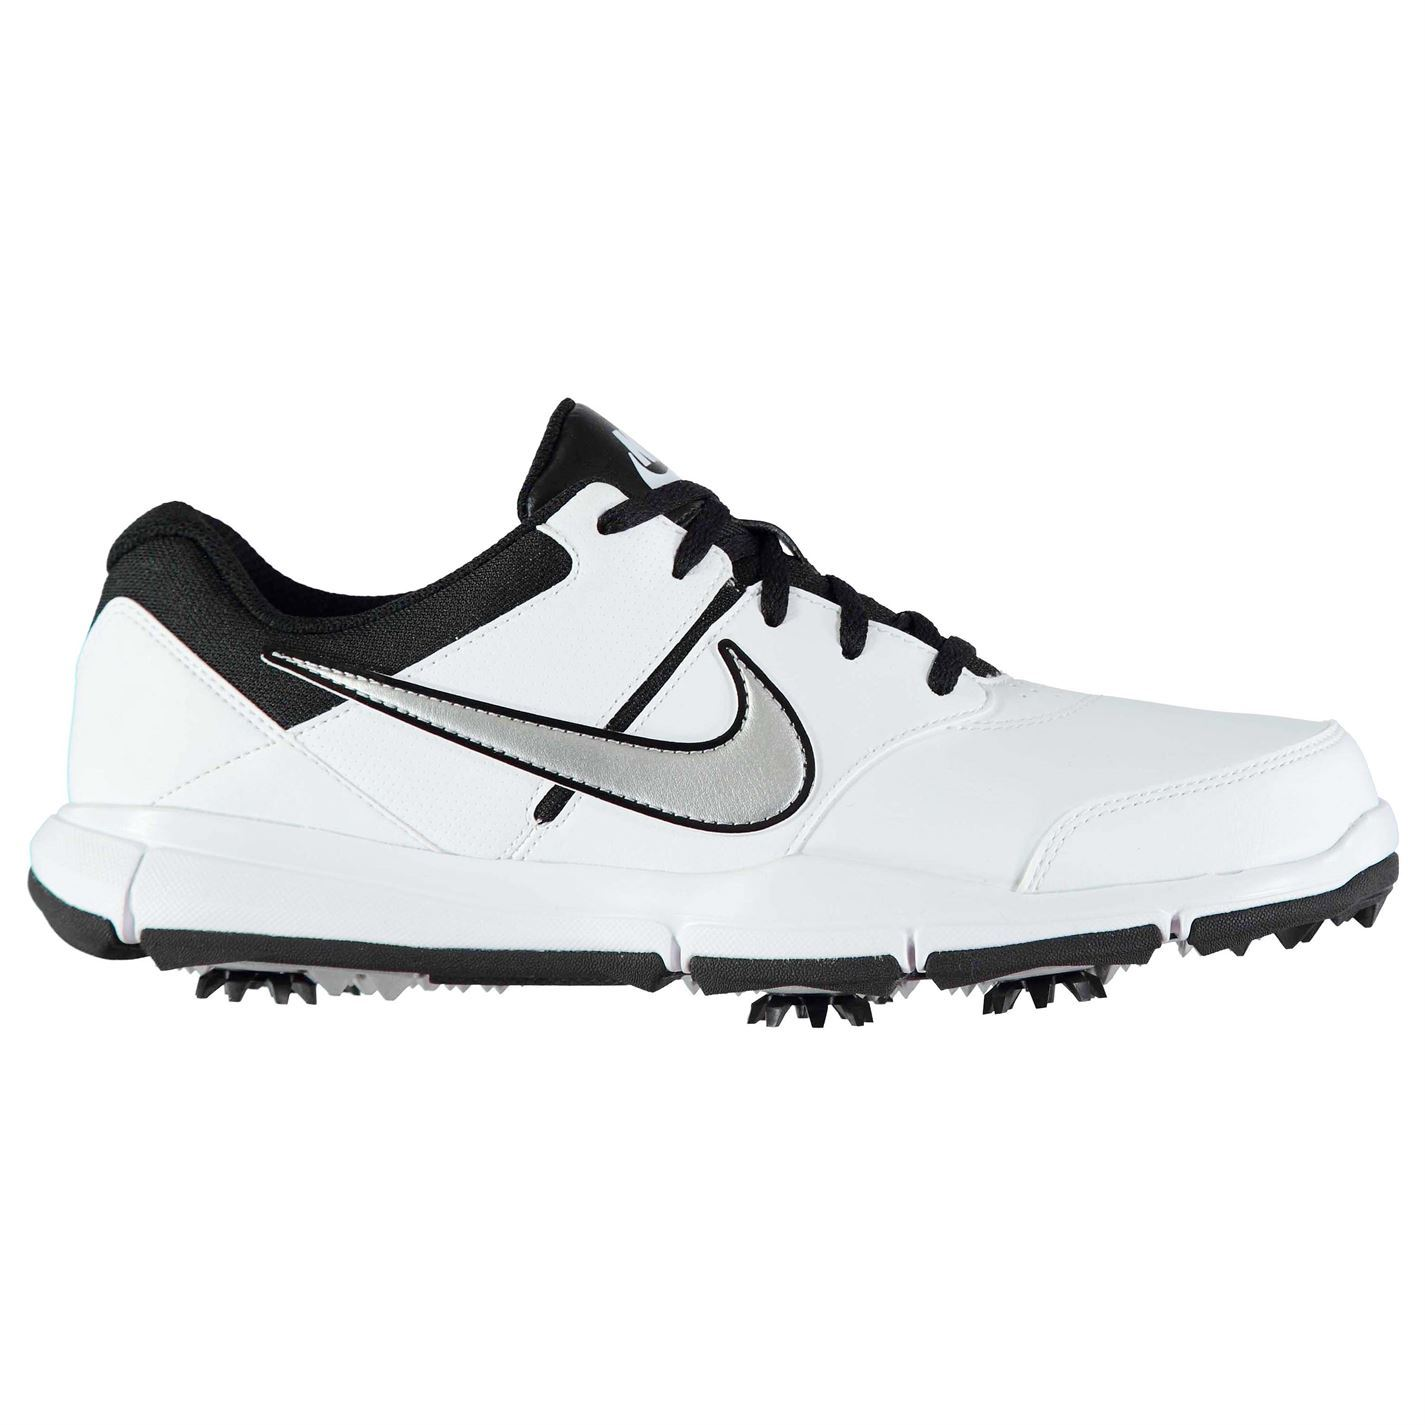 Nike-Durasport-4-Spiked-Golf-Shoes-Mens-Spikes-Footwear thumbnail 22